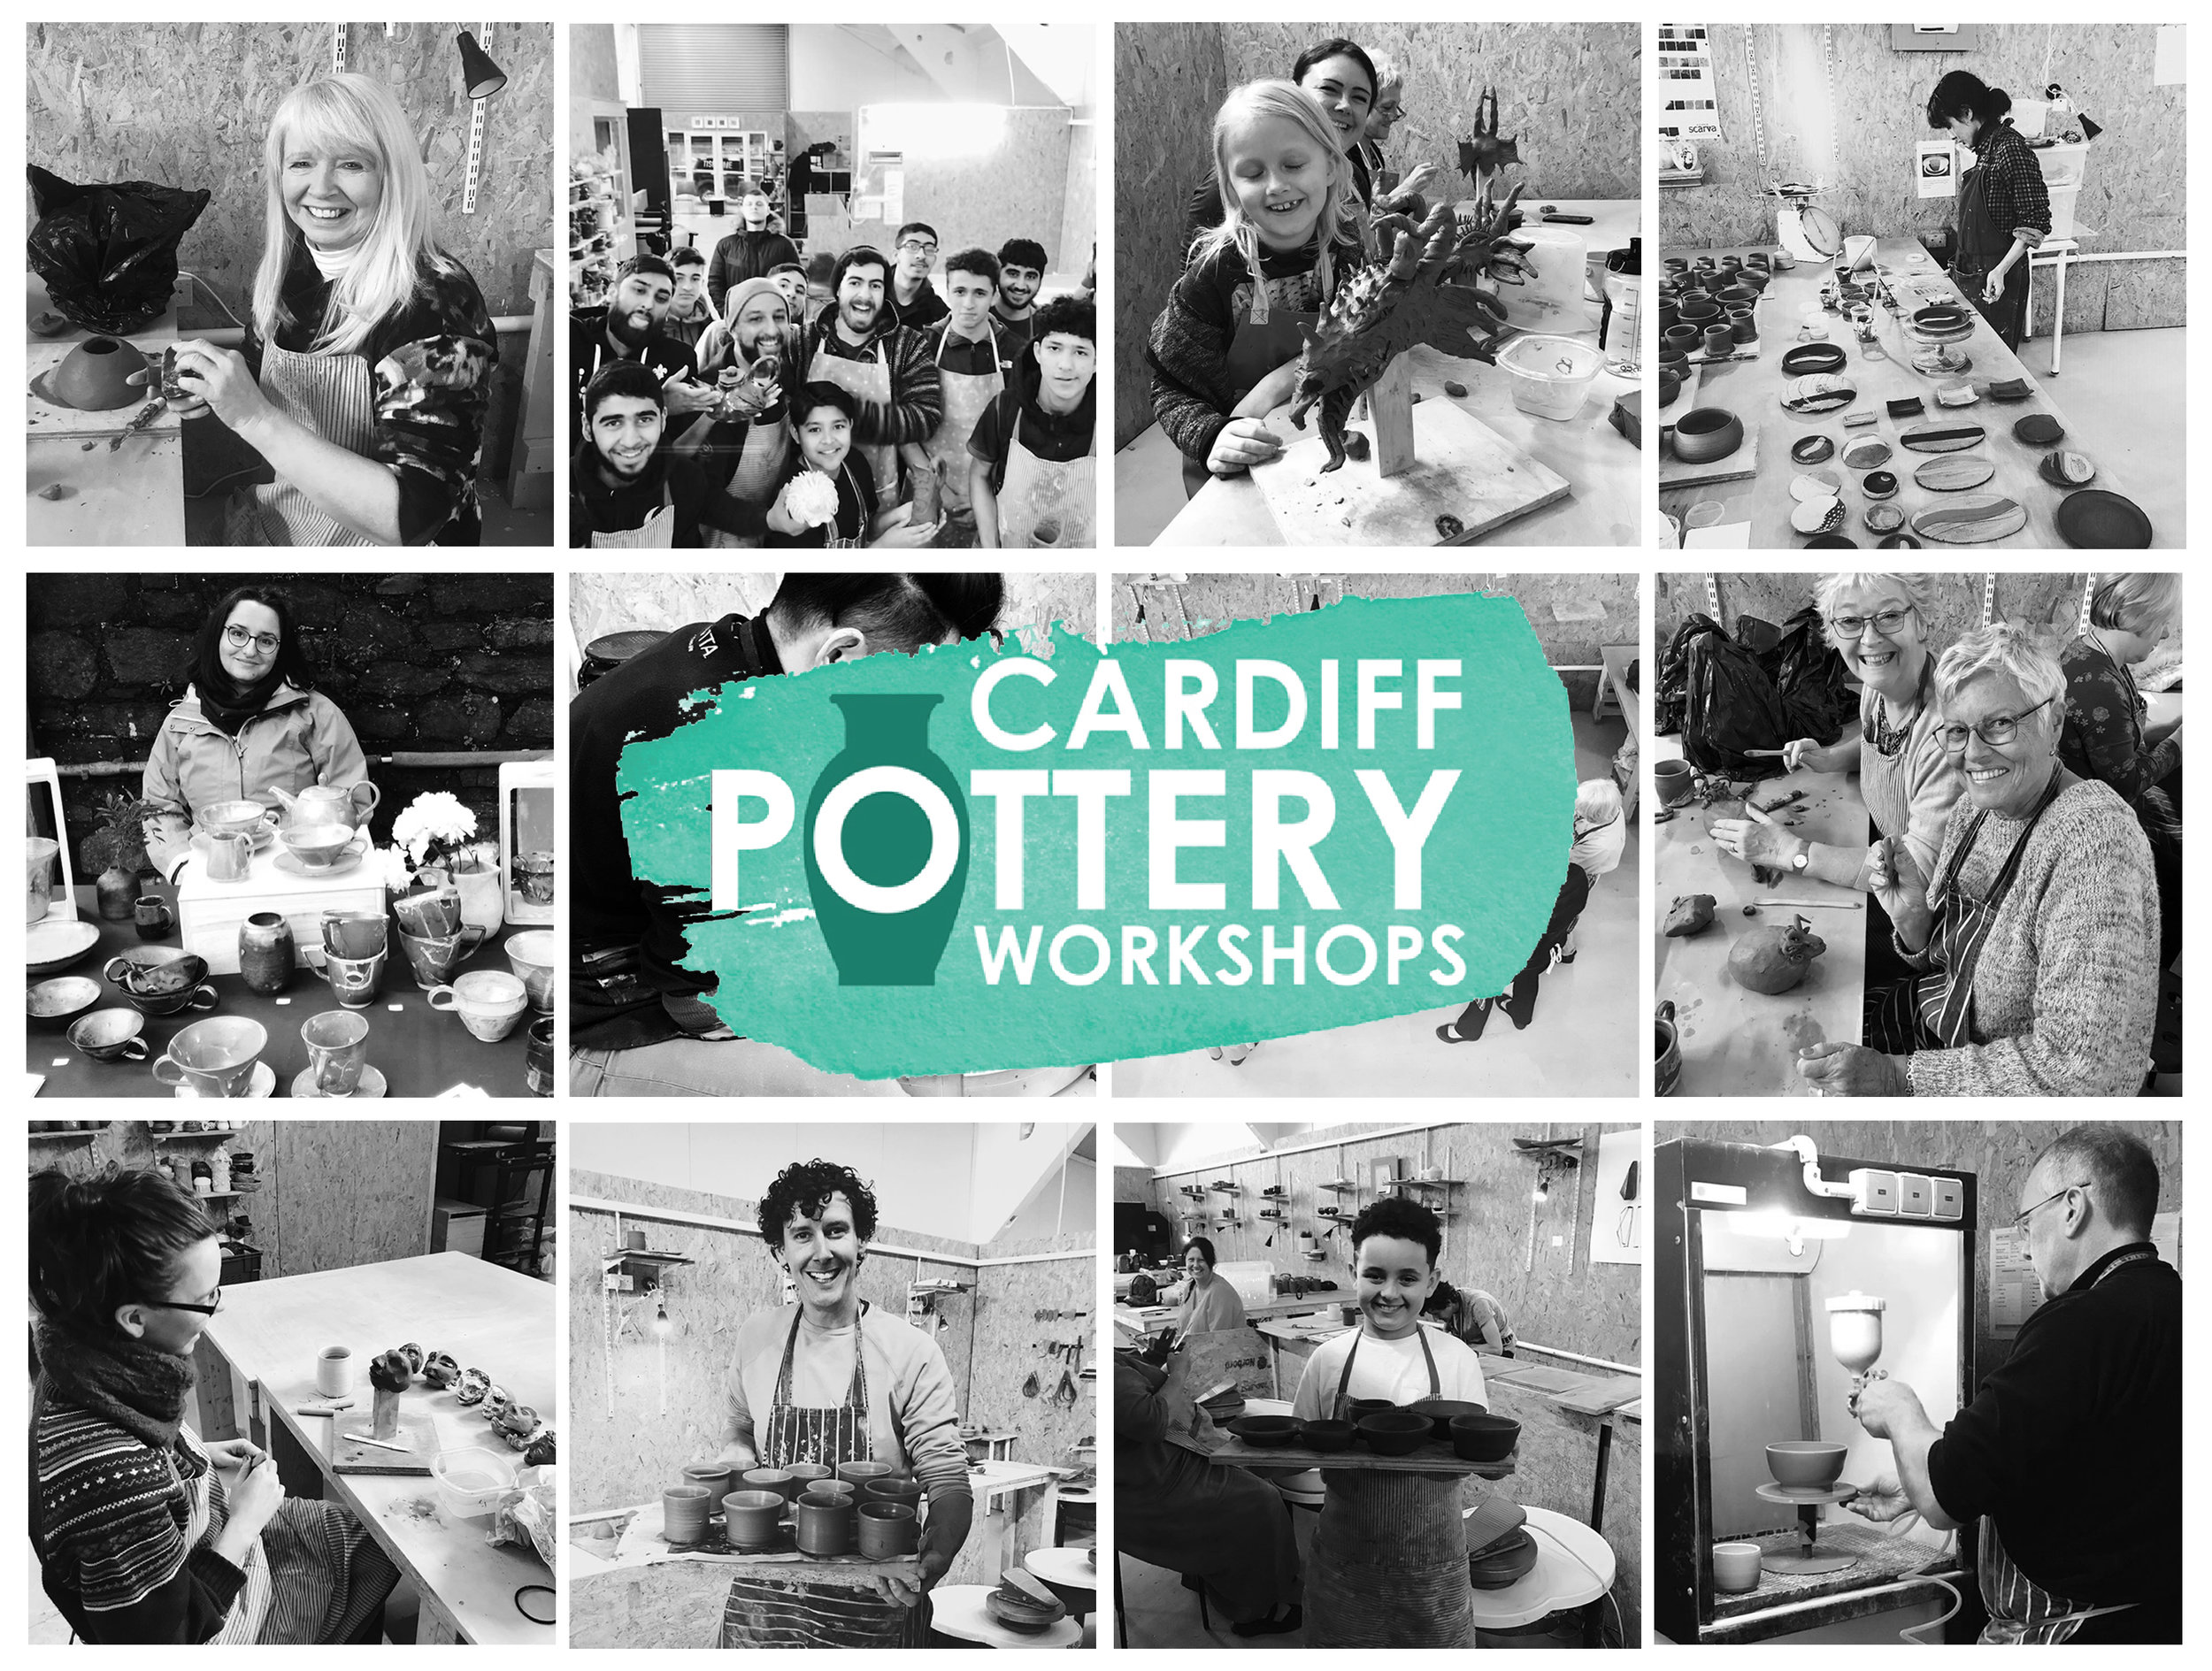 Cardiff Pottery Workshops Event Image.jpg